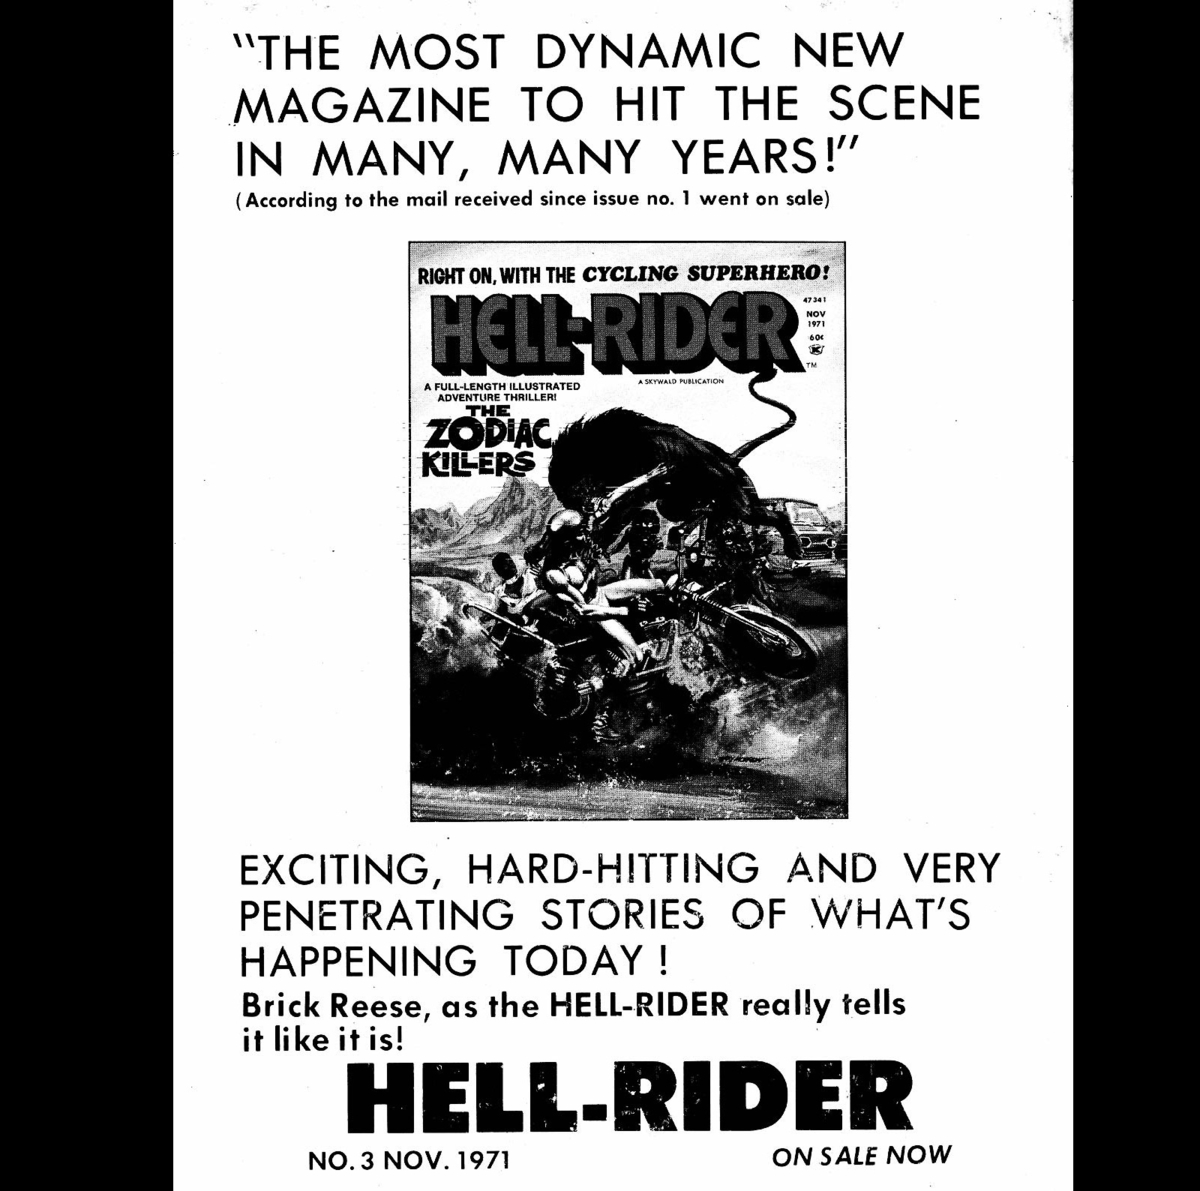 Skywald publications 'Psycho' # 5 Advertisement for 'Hell-Rider' # 3